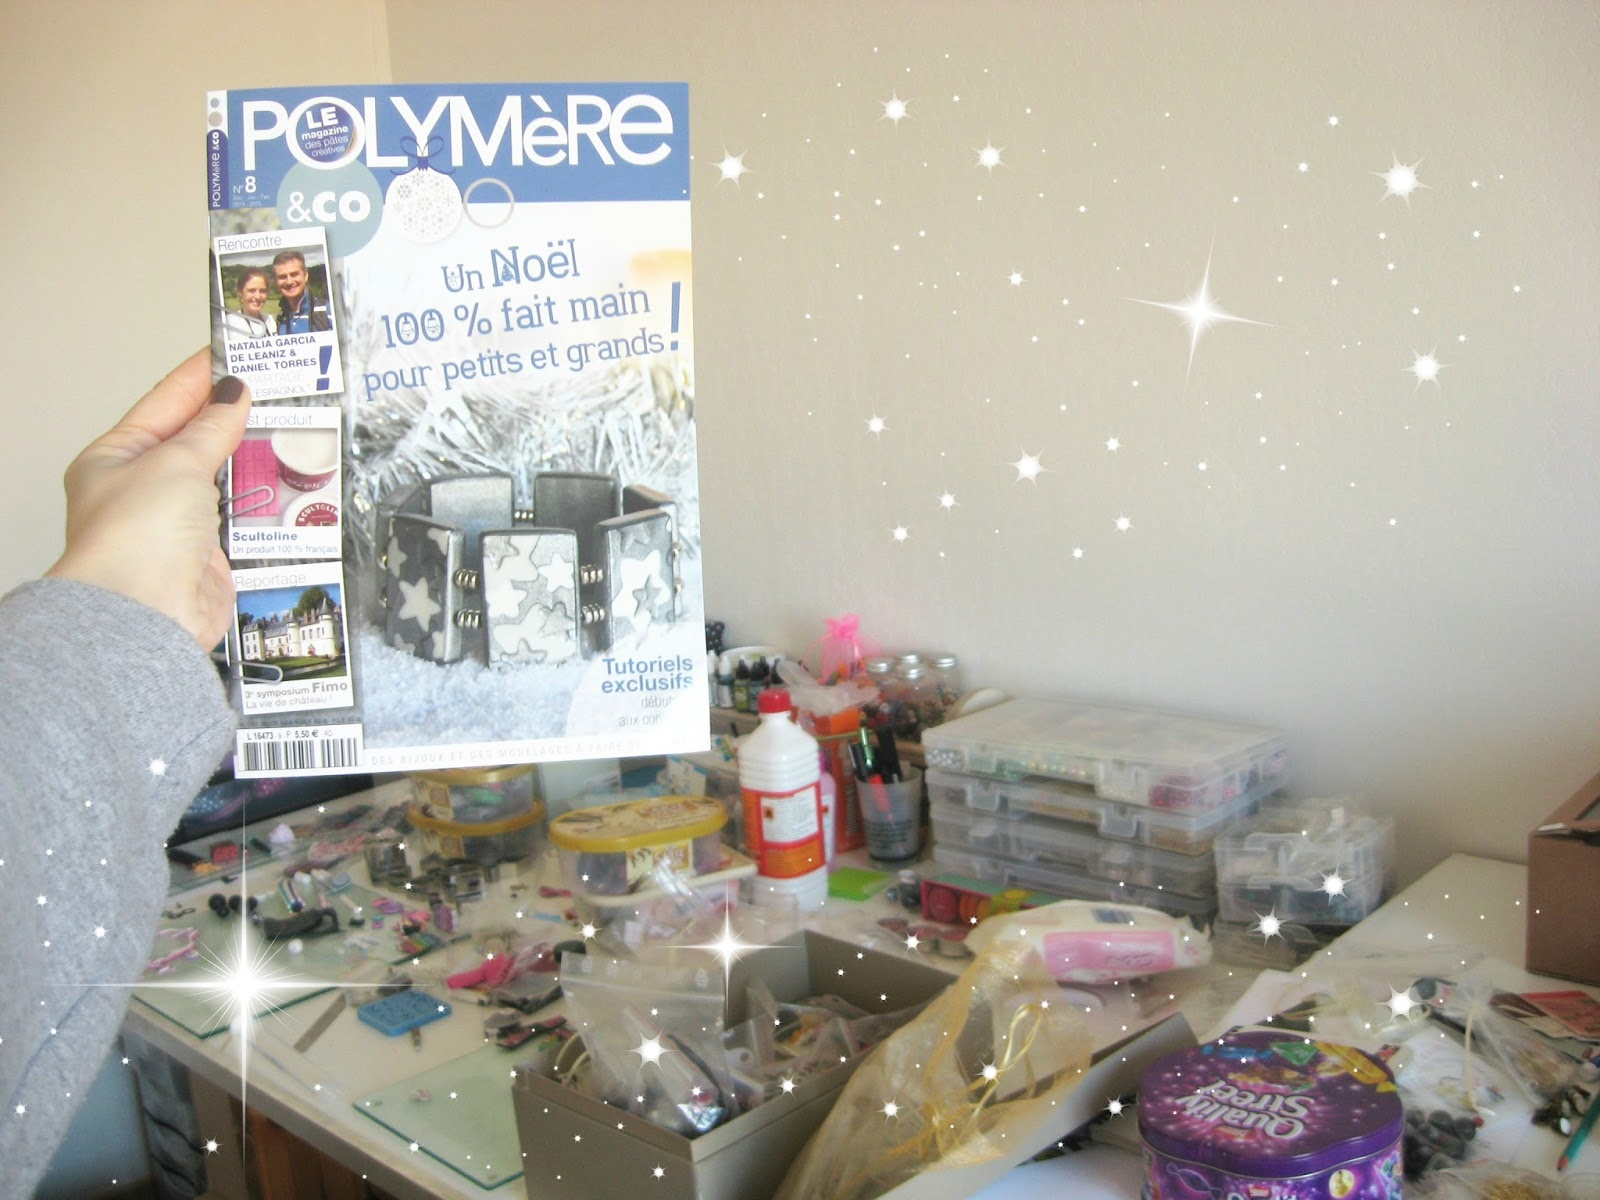 polymère and co magazine